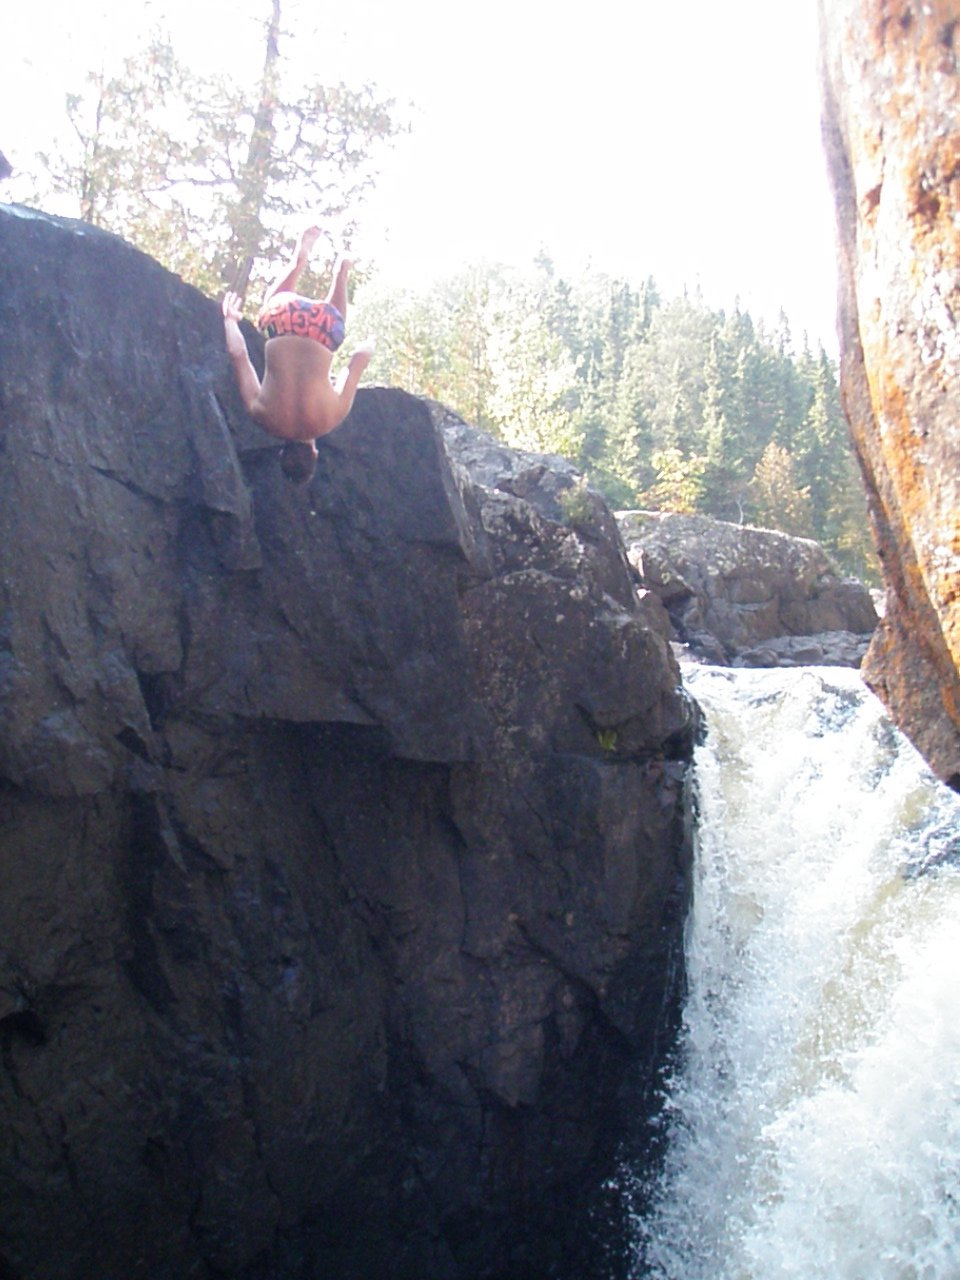 Another gainer into mackenzie falls